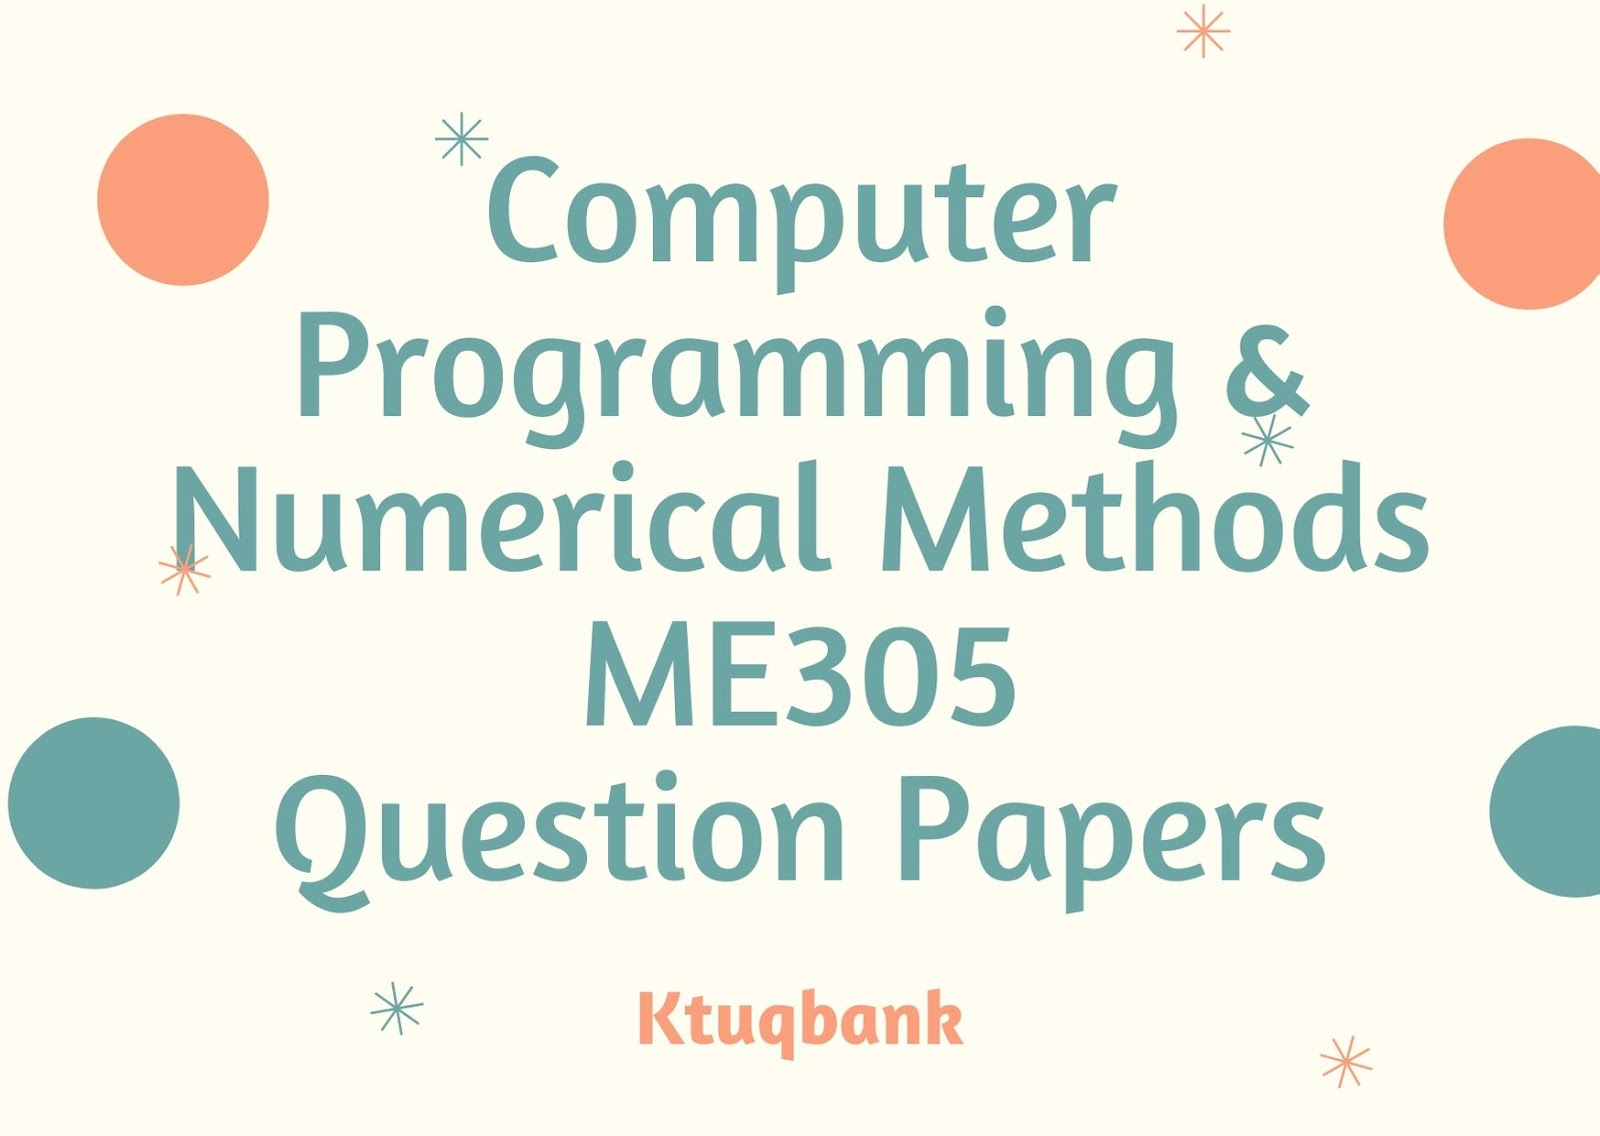 Computer Programming & Numerical Methods | ME305 | Question Papers (2015 batch)